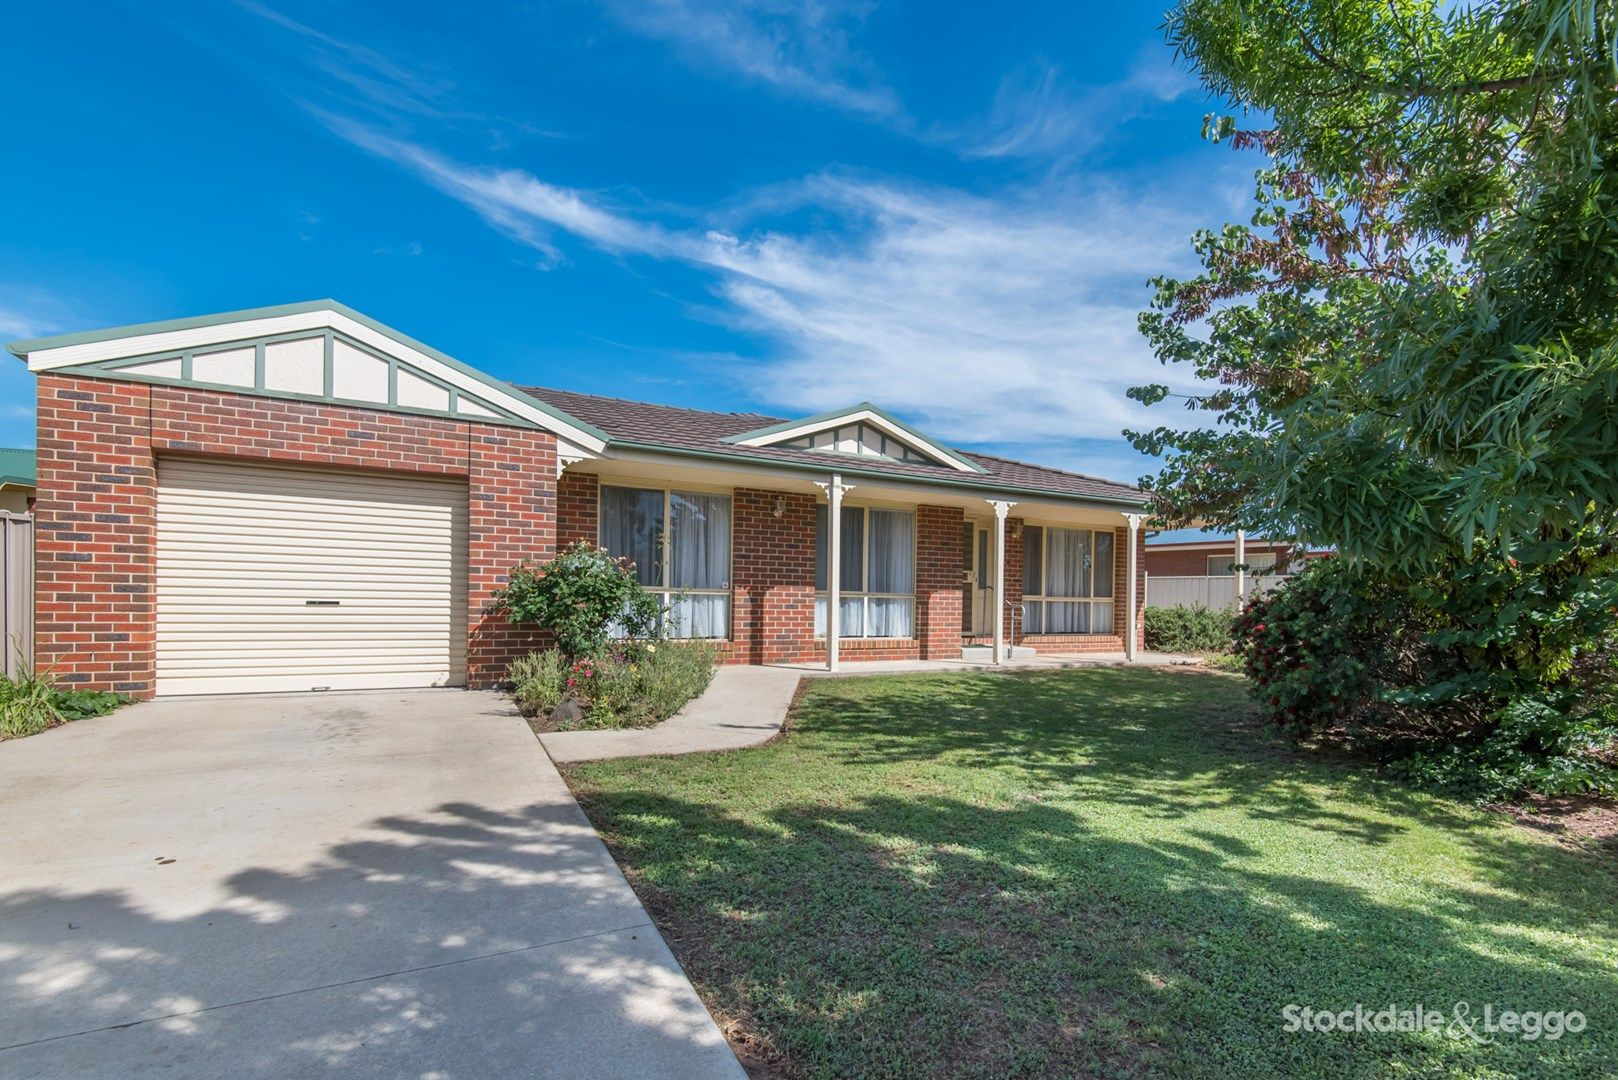 1/17 Menzies Crescent, Shepparton VIC 3630, Image 0